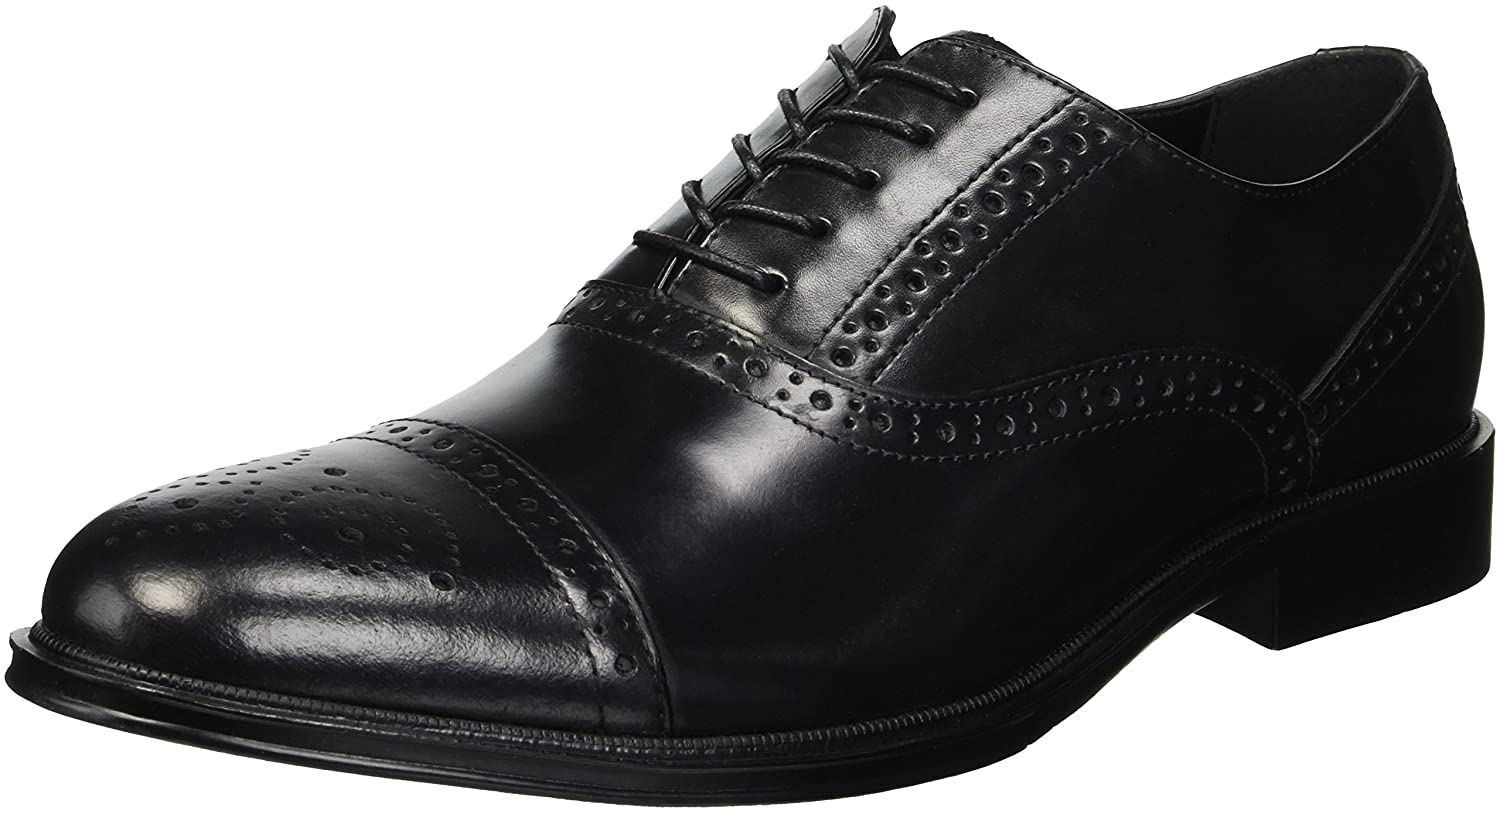 Kenneth Cole Reaction Zac Lace Up, Zapatos de Cordones Oxford para Hombre